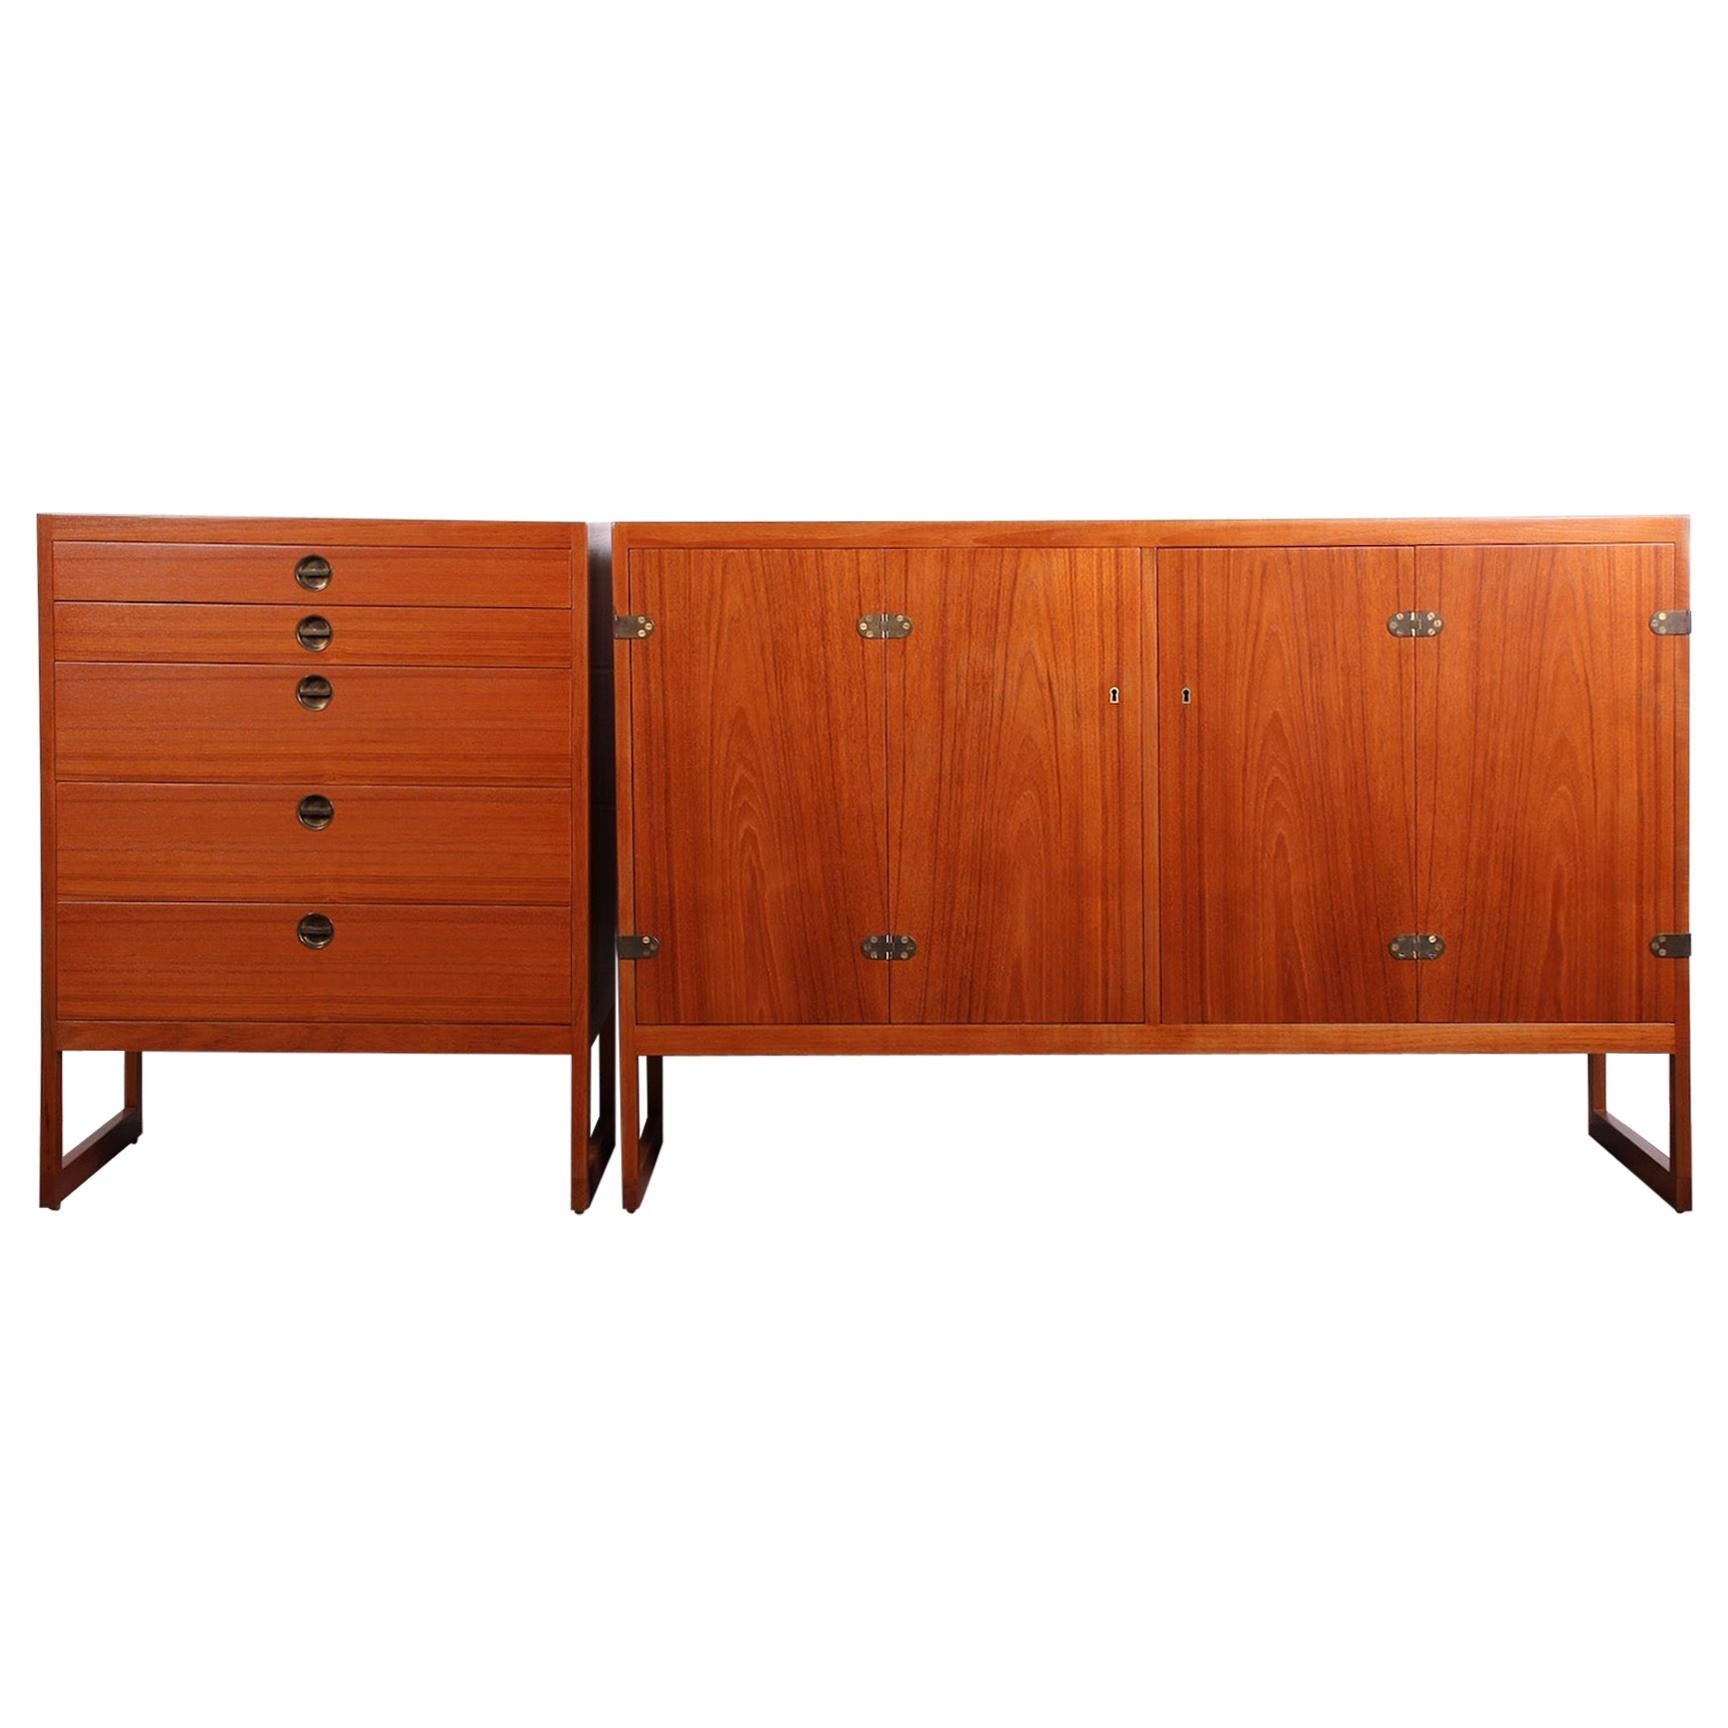 Pair of Cabinets by Børge Mogensen